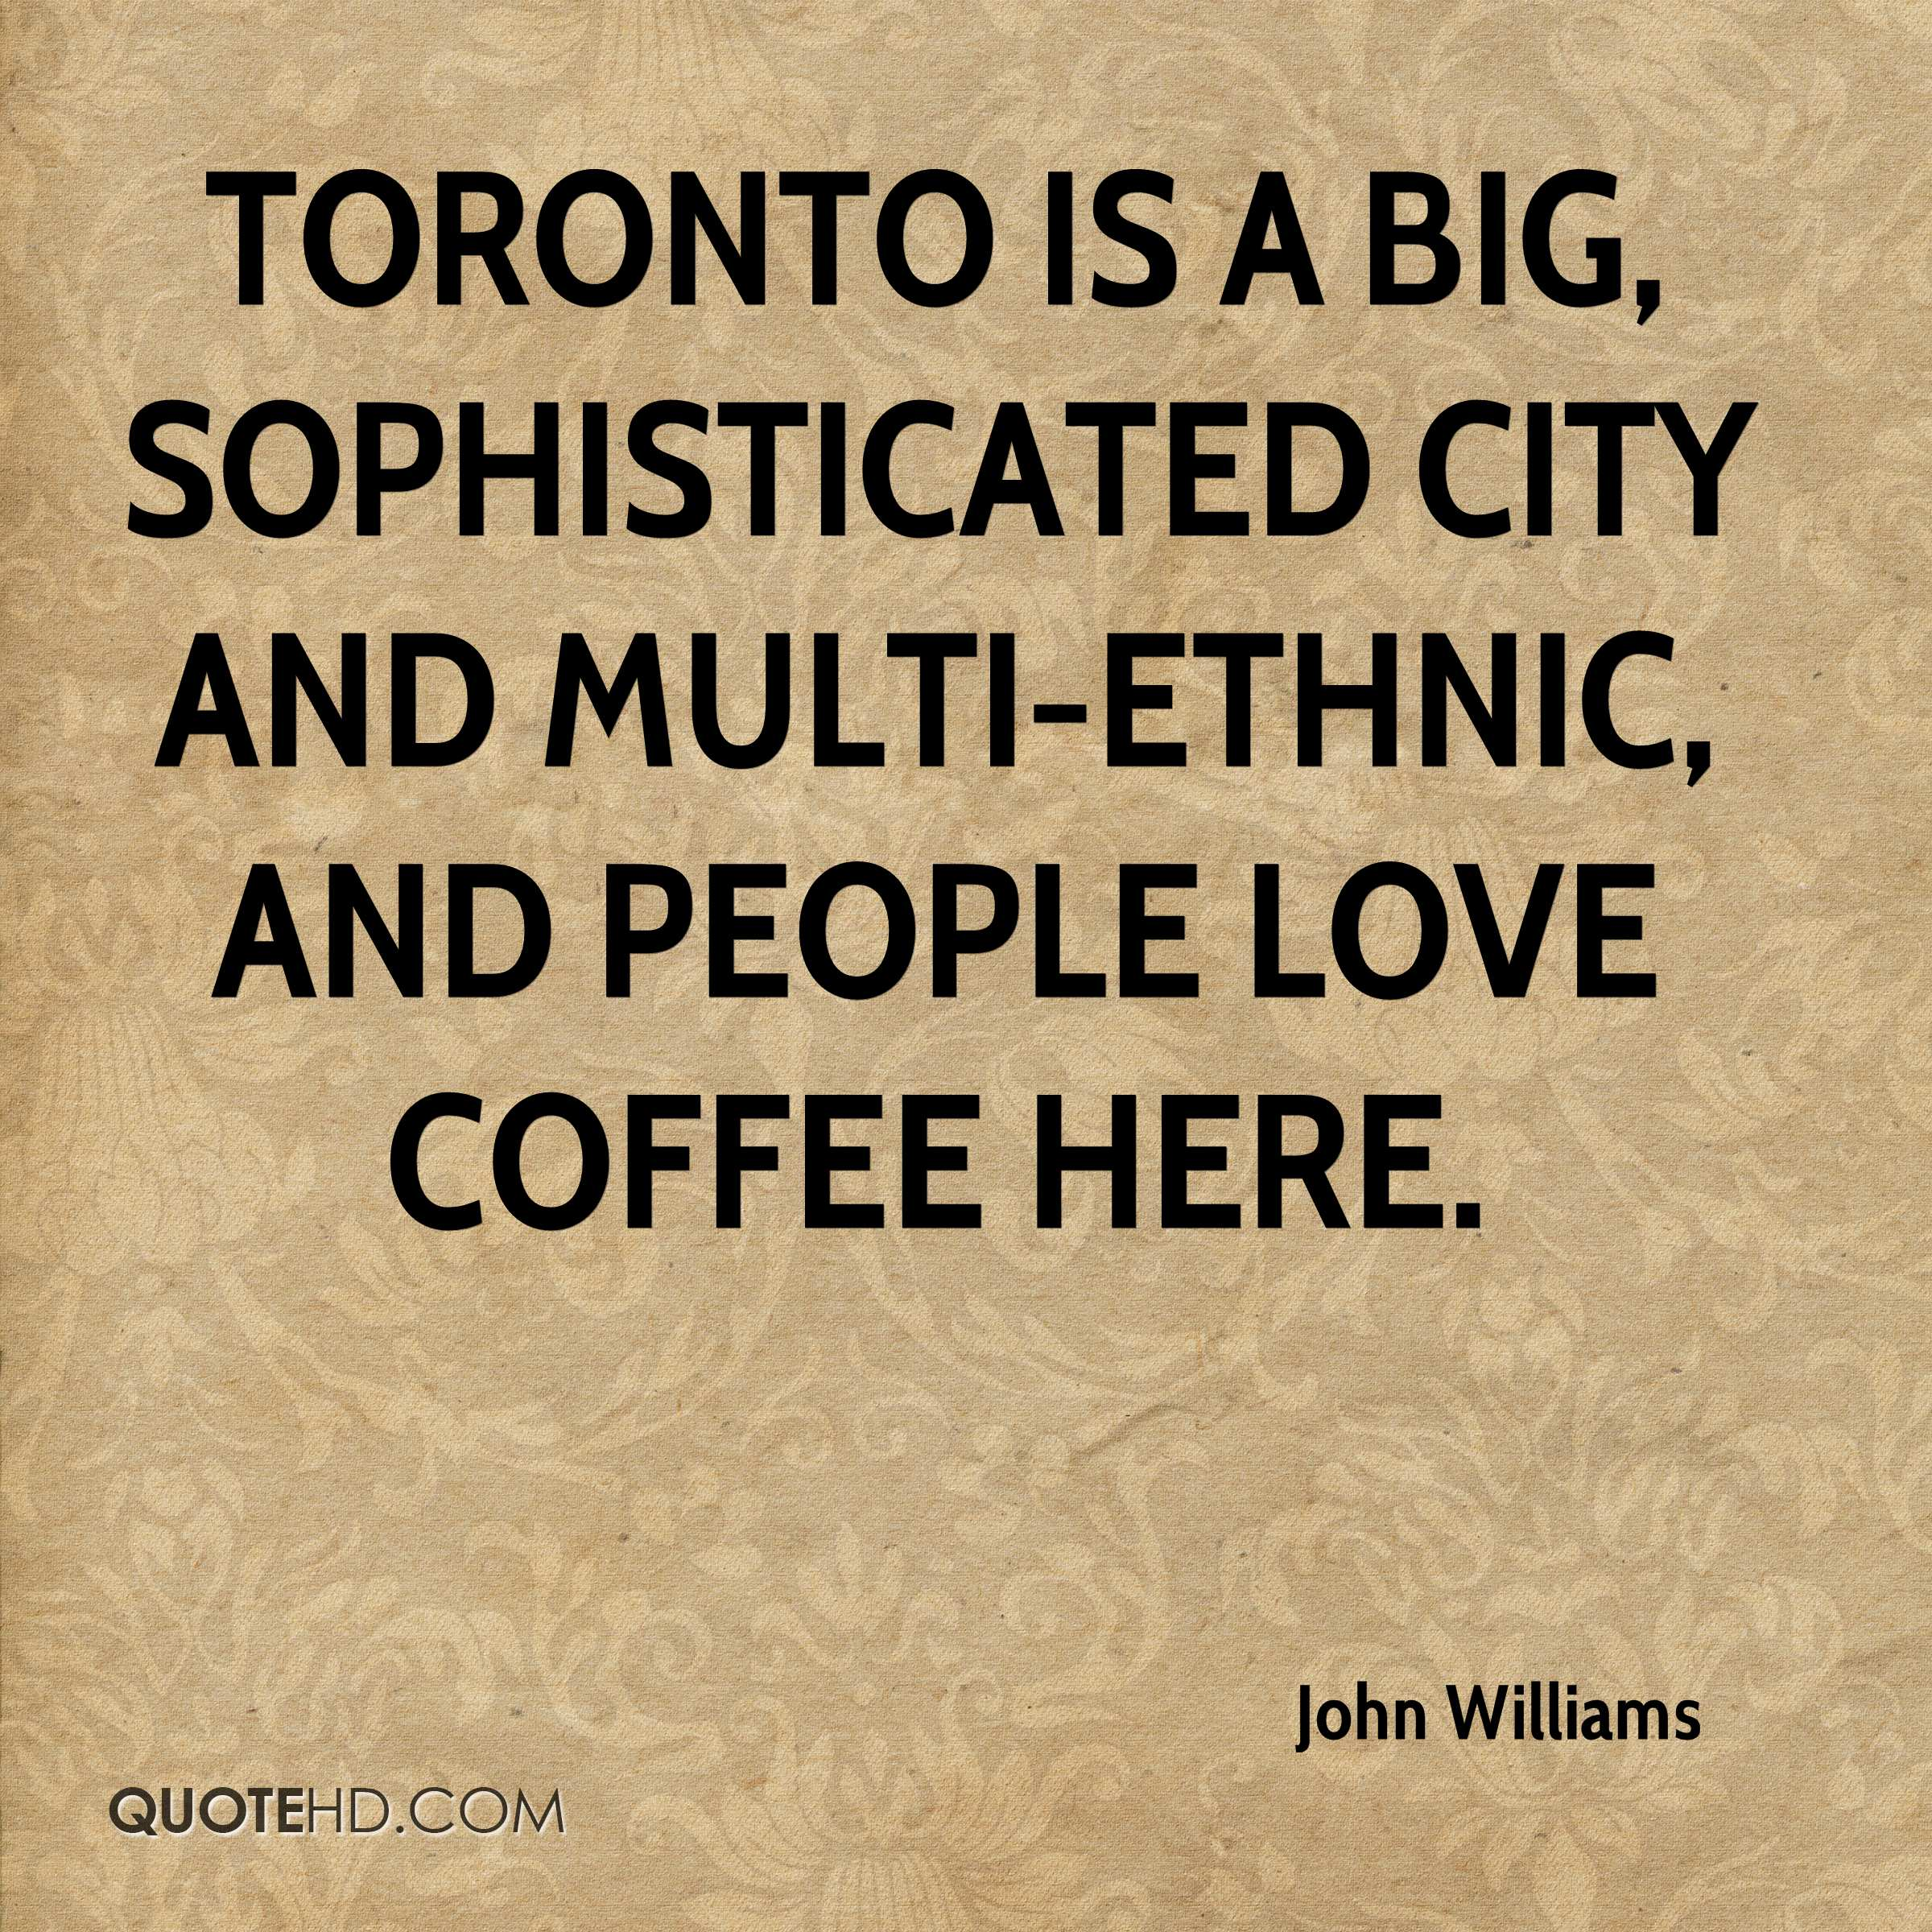 Toronto is a big, sophisticated city and multi-ethnic, and people love coffee here.